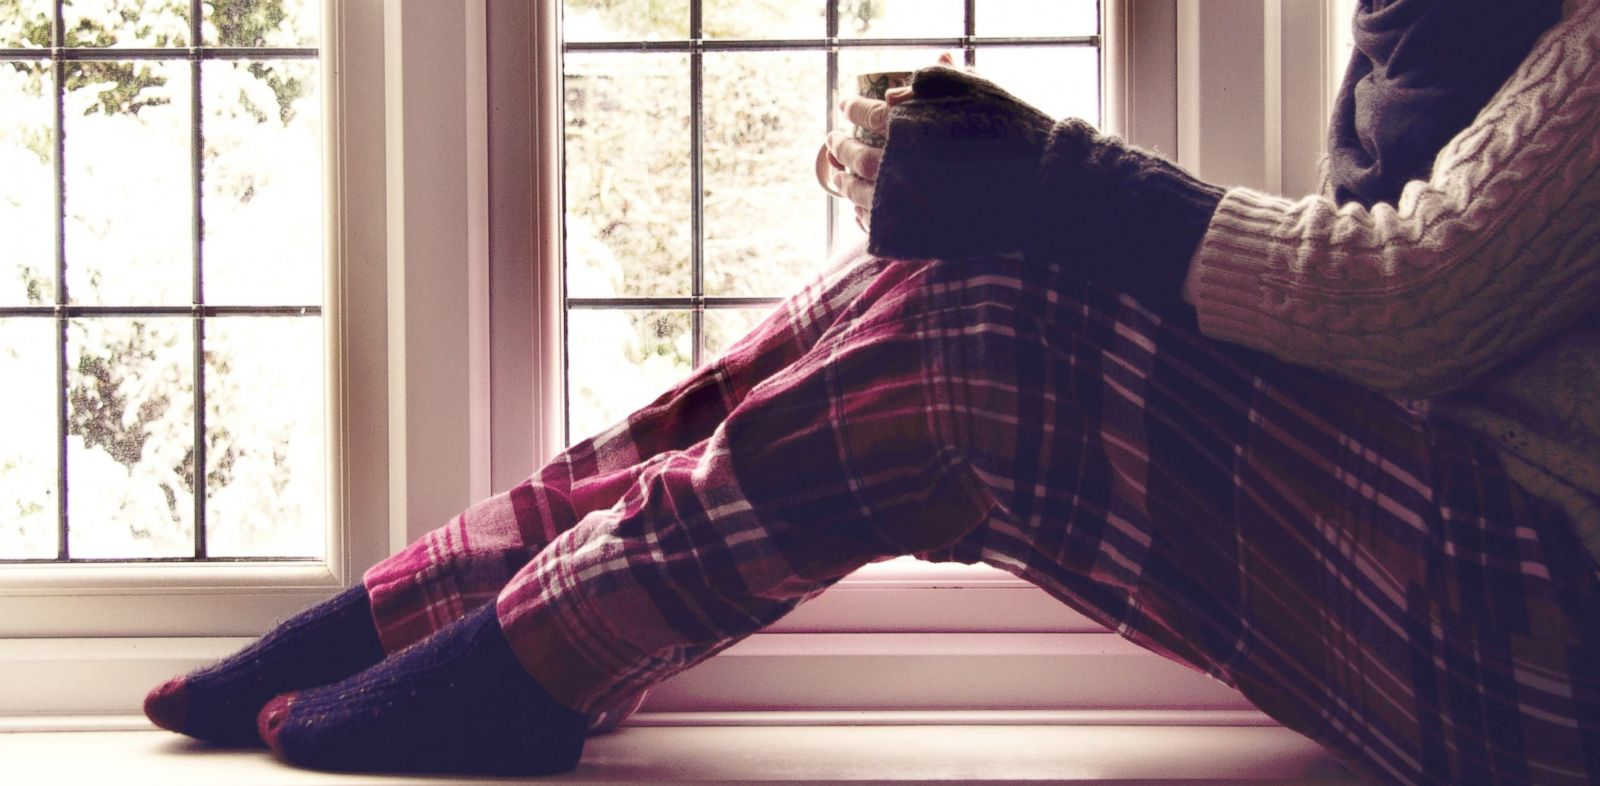 PHOTO: Studies show that shivering for 10 minutes may be as effective for weight loss as exercise.